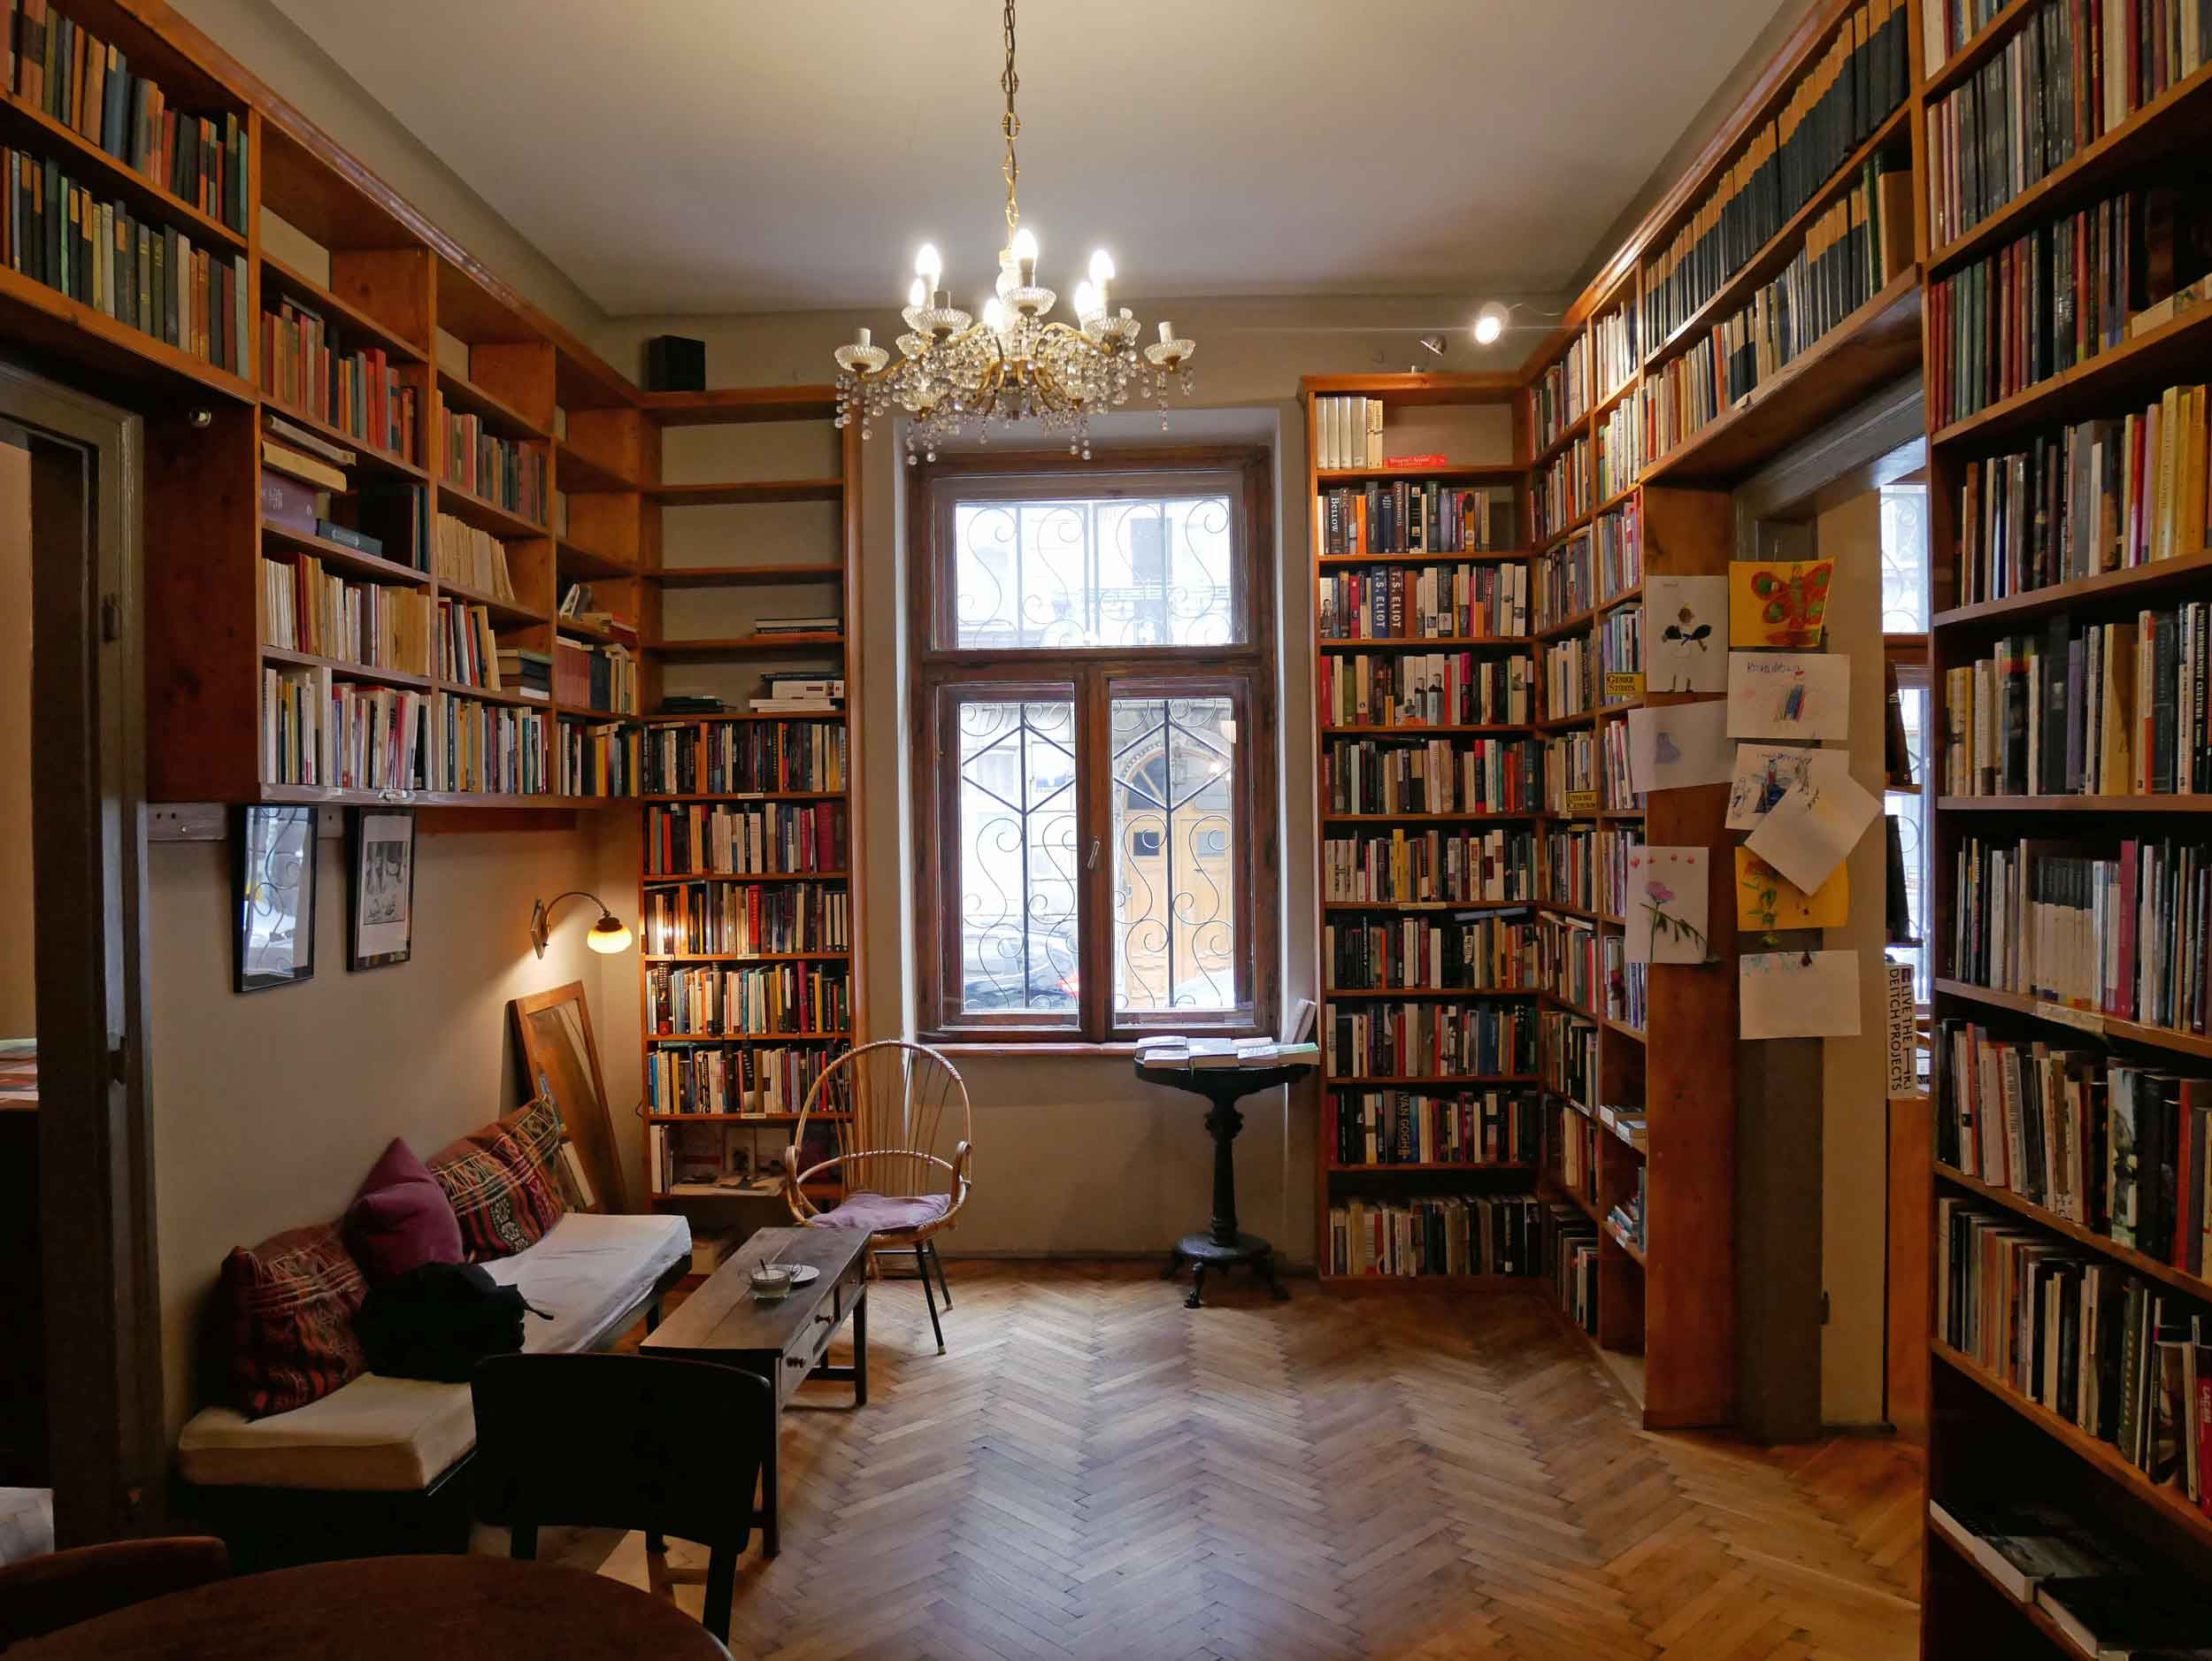 Such a warm and inviting space, customers browse the shelves and read books or periodicals in the café or in the furnished back rooms of Massolit.